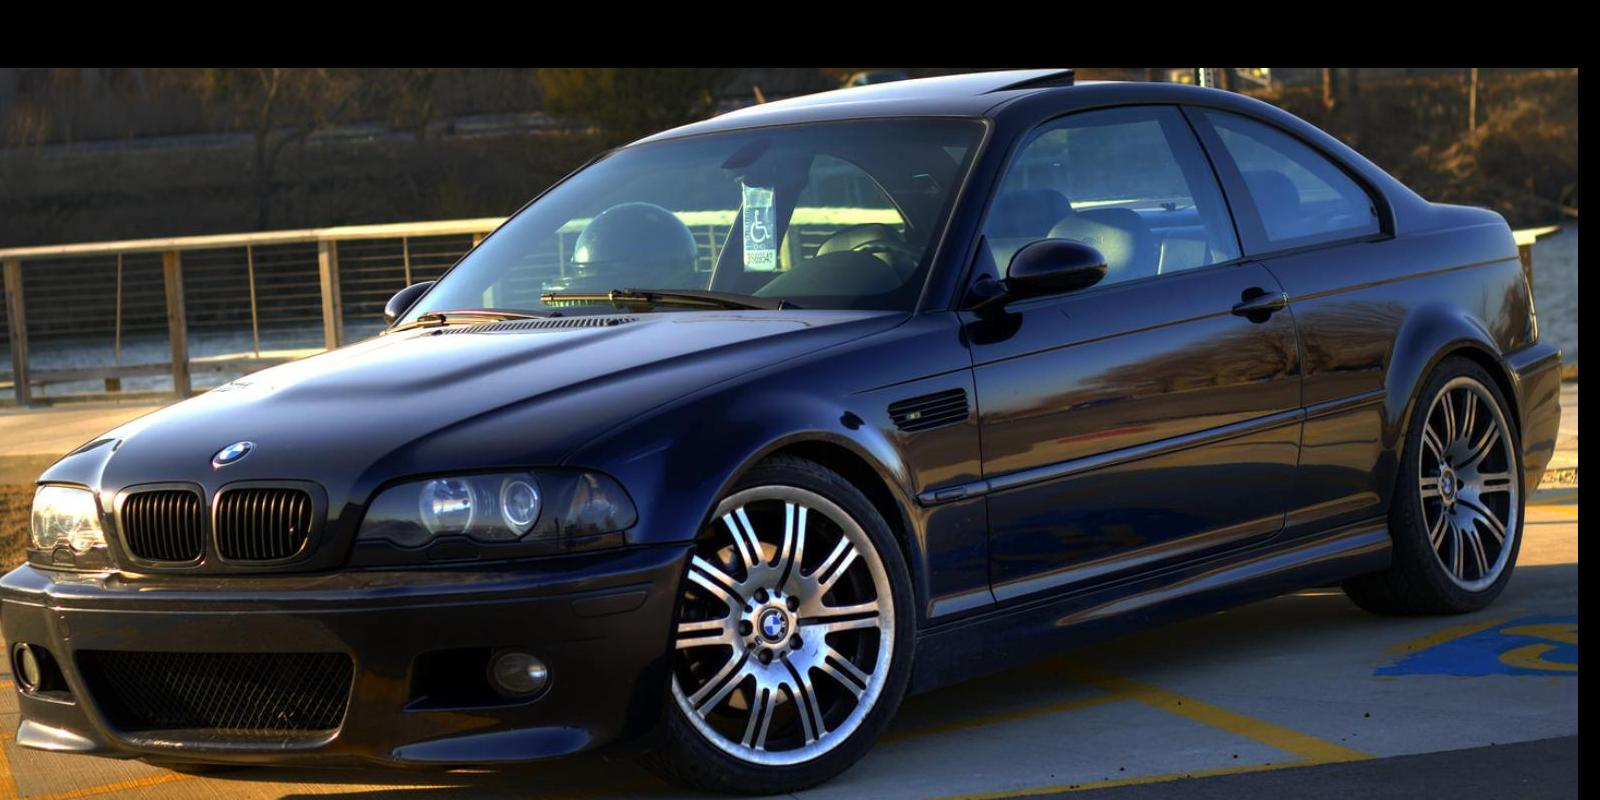 rdoebel 2003 bmw m3coupe 2d specs photos modification info at cardomain. Black Bedroom Furniture Sets. Home Design Ideas